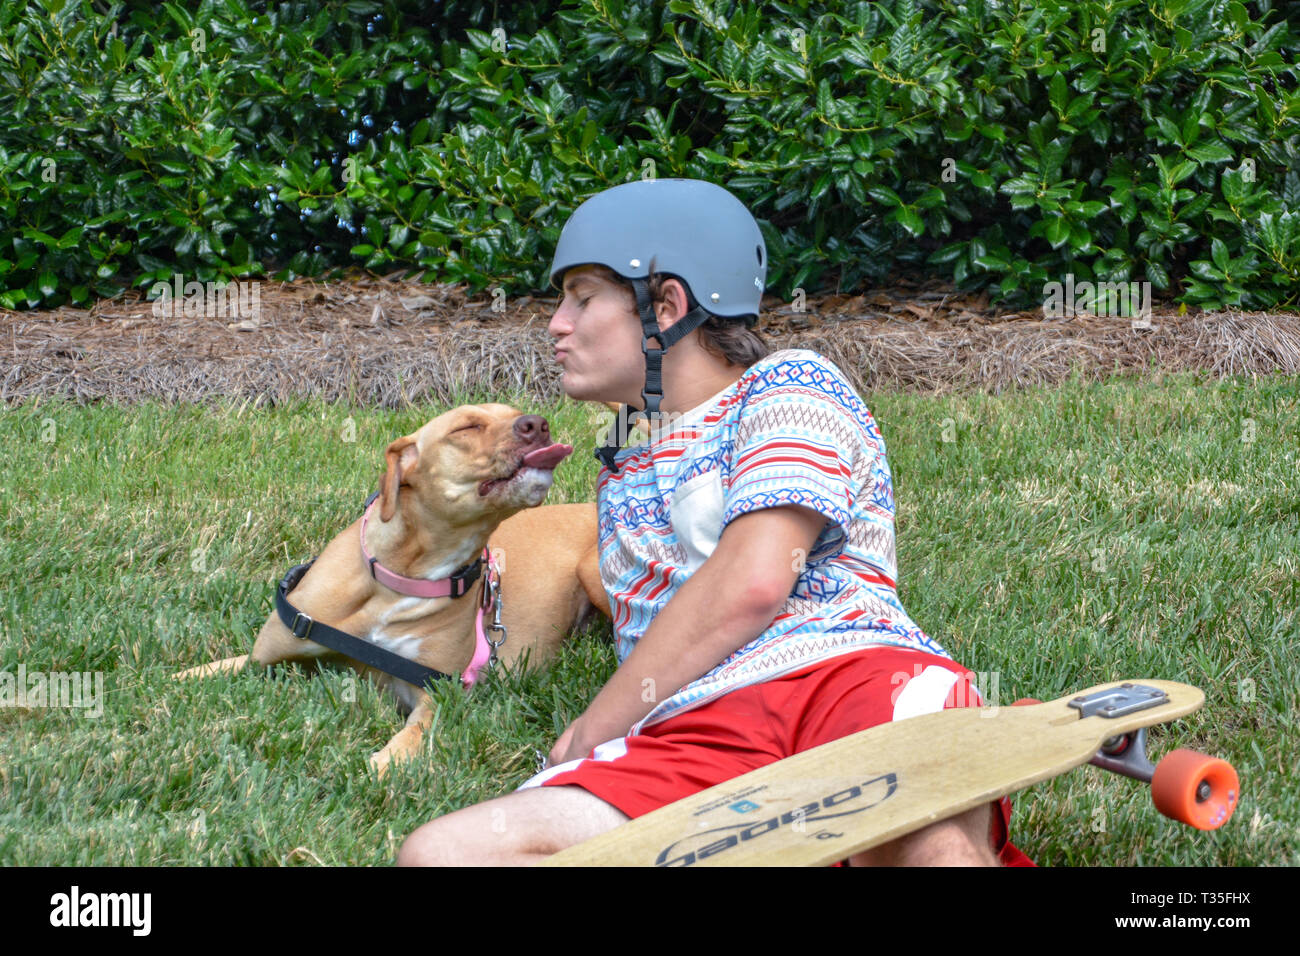 A pit bull loves pulling his teenage owner on his skateboard down the street. They do it a time or two and then play in the grass to rest. Stock Photo